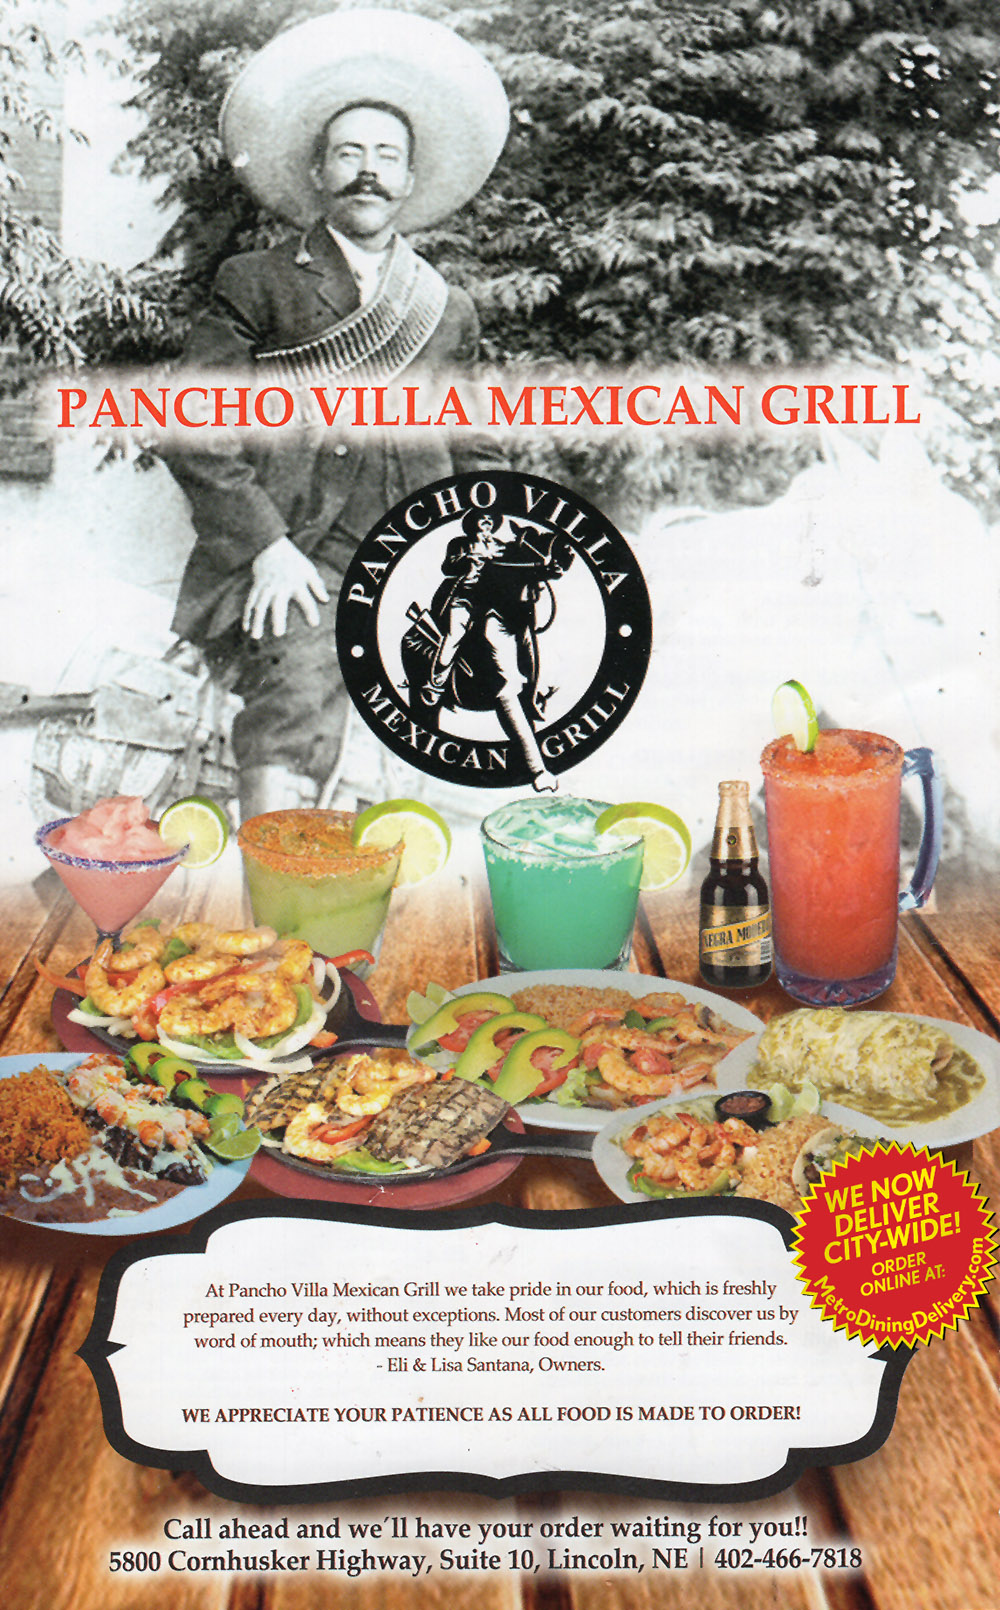 Chevys Lincoln Ne >> Pancho Villa Mexican Grill | Full Menu | Lincoln NE ...